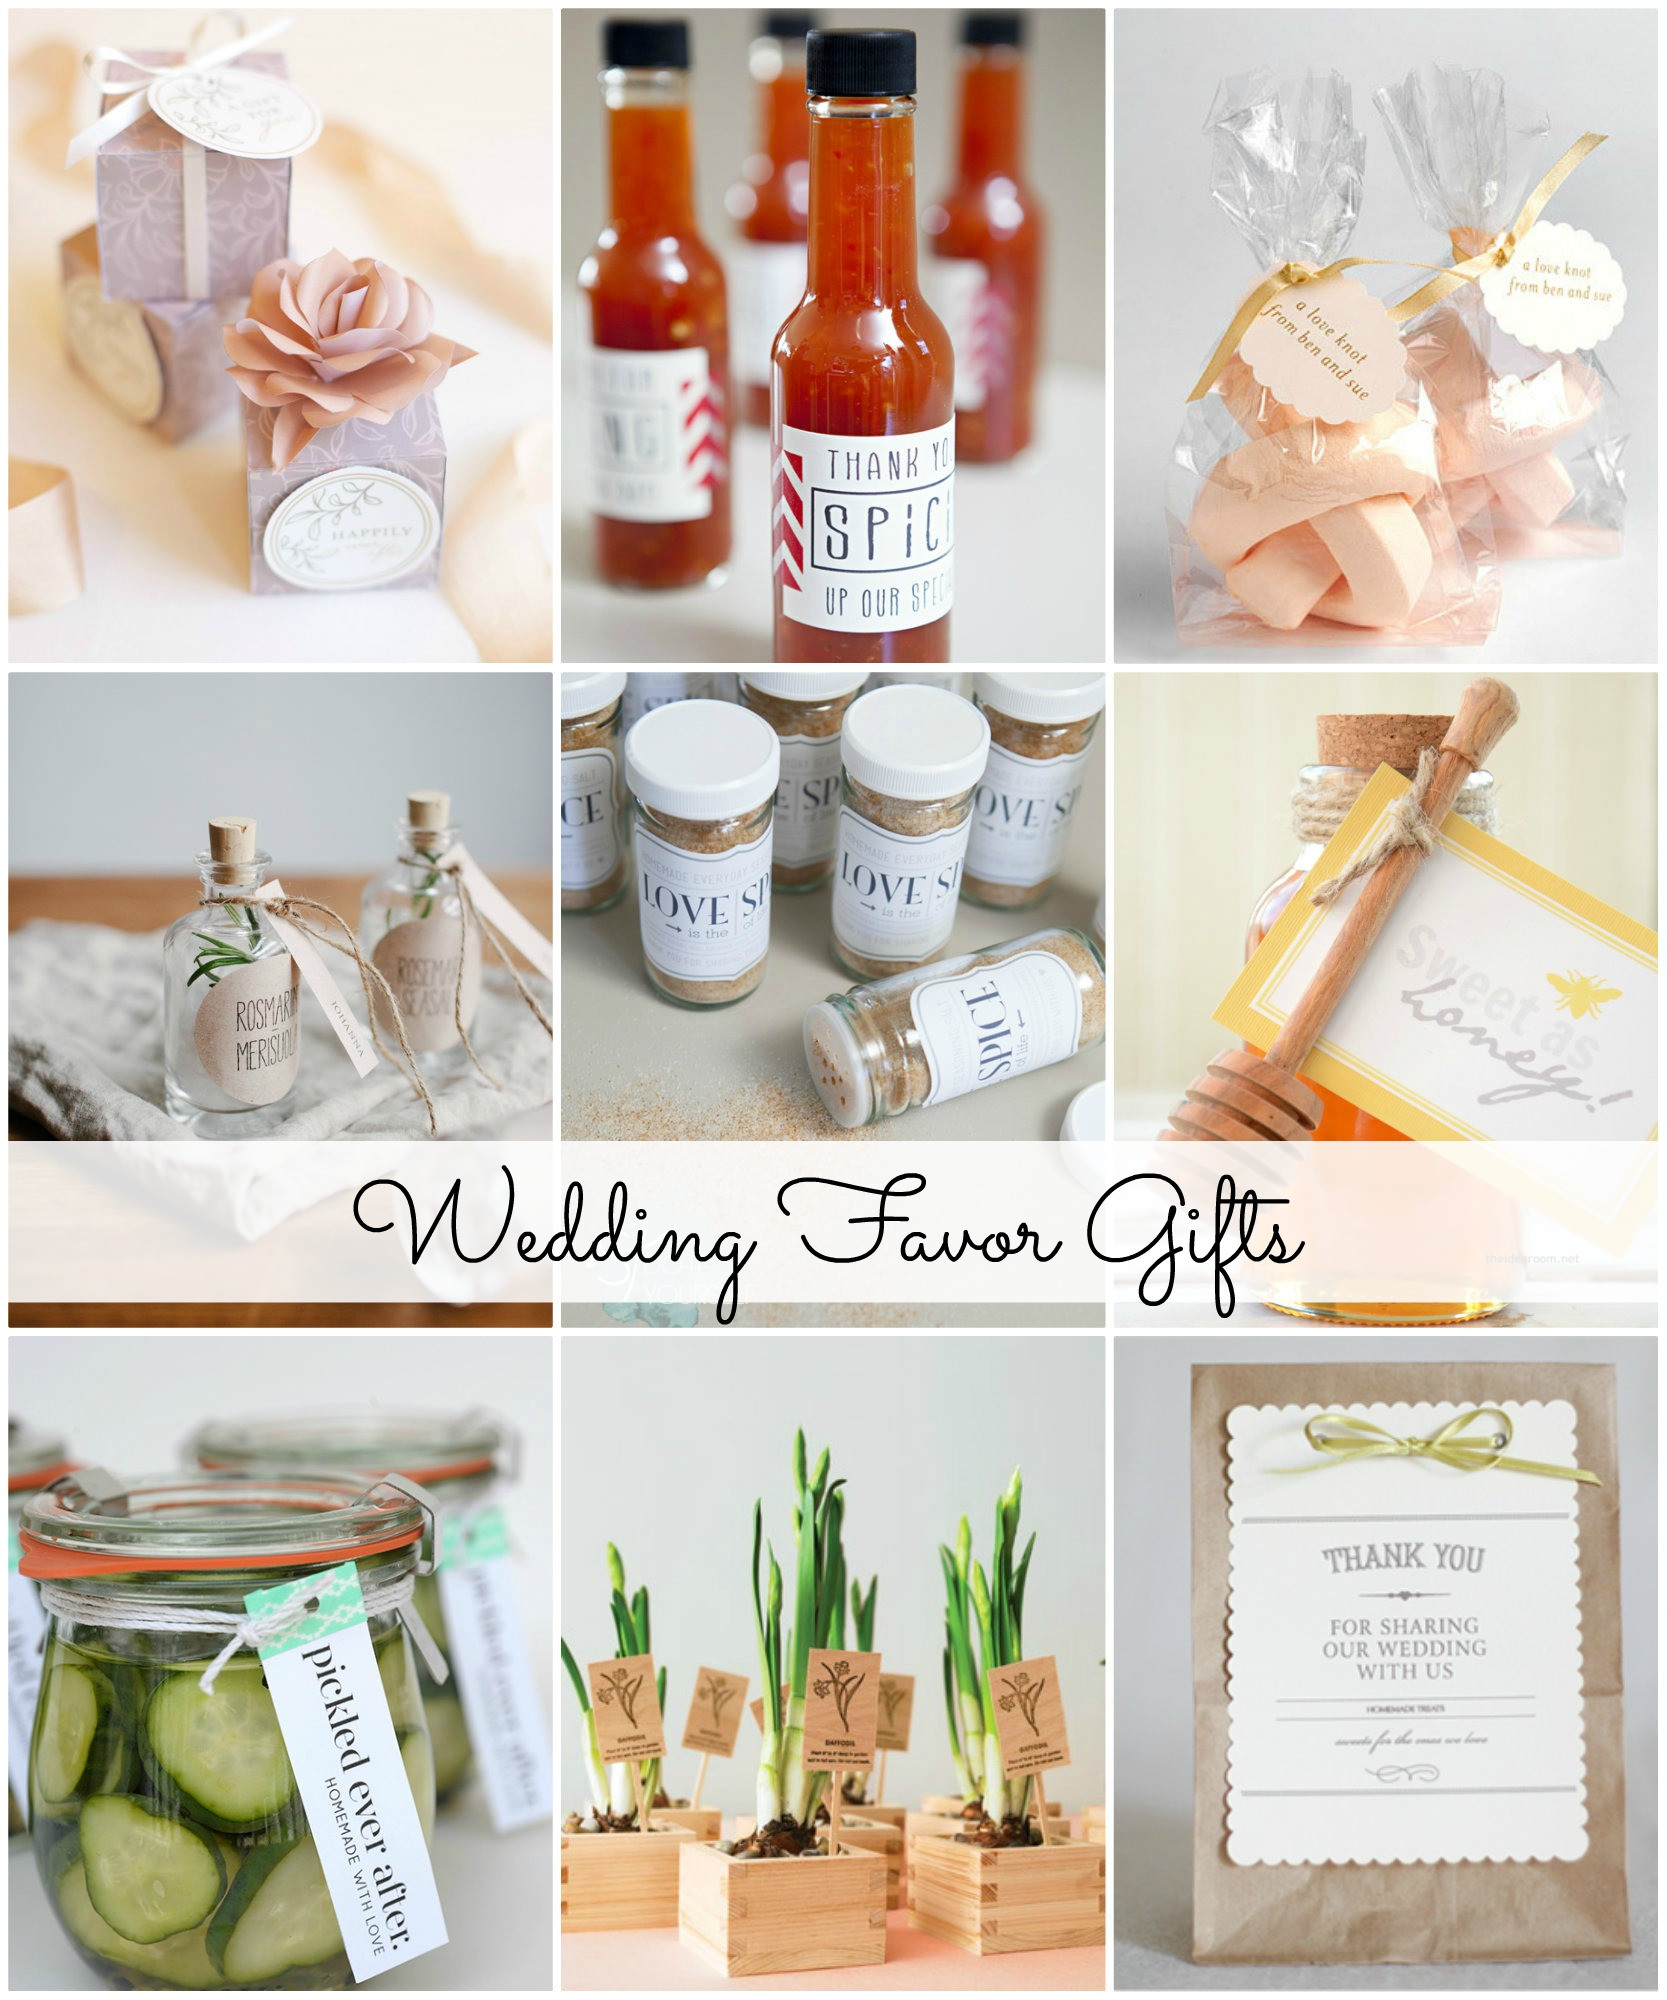 Small Wedding Gift Ideas  Wedding Favor Gift Ideas The Idea Room